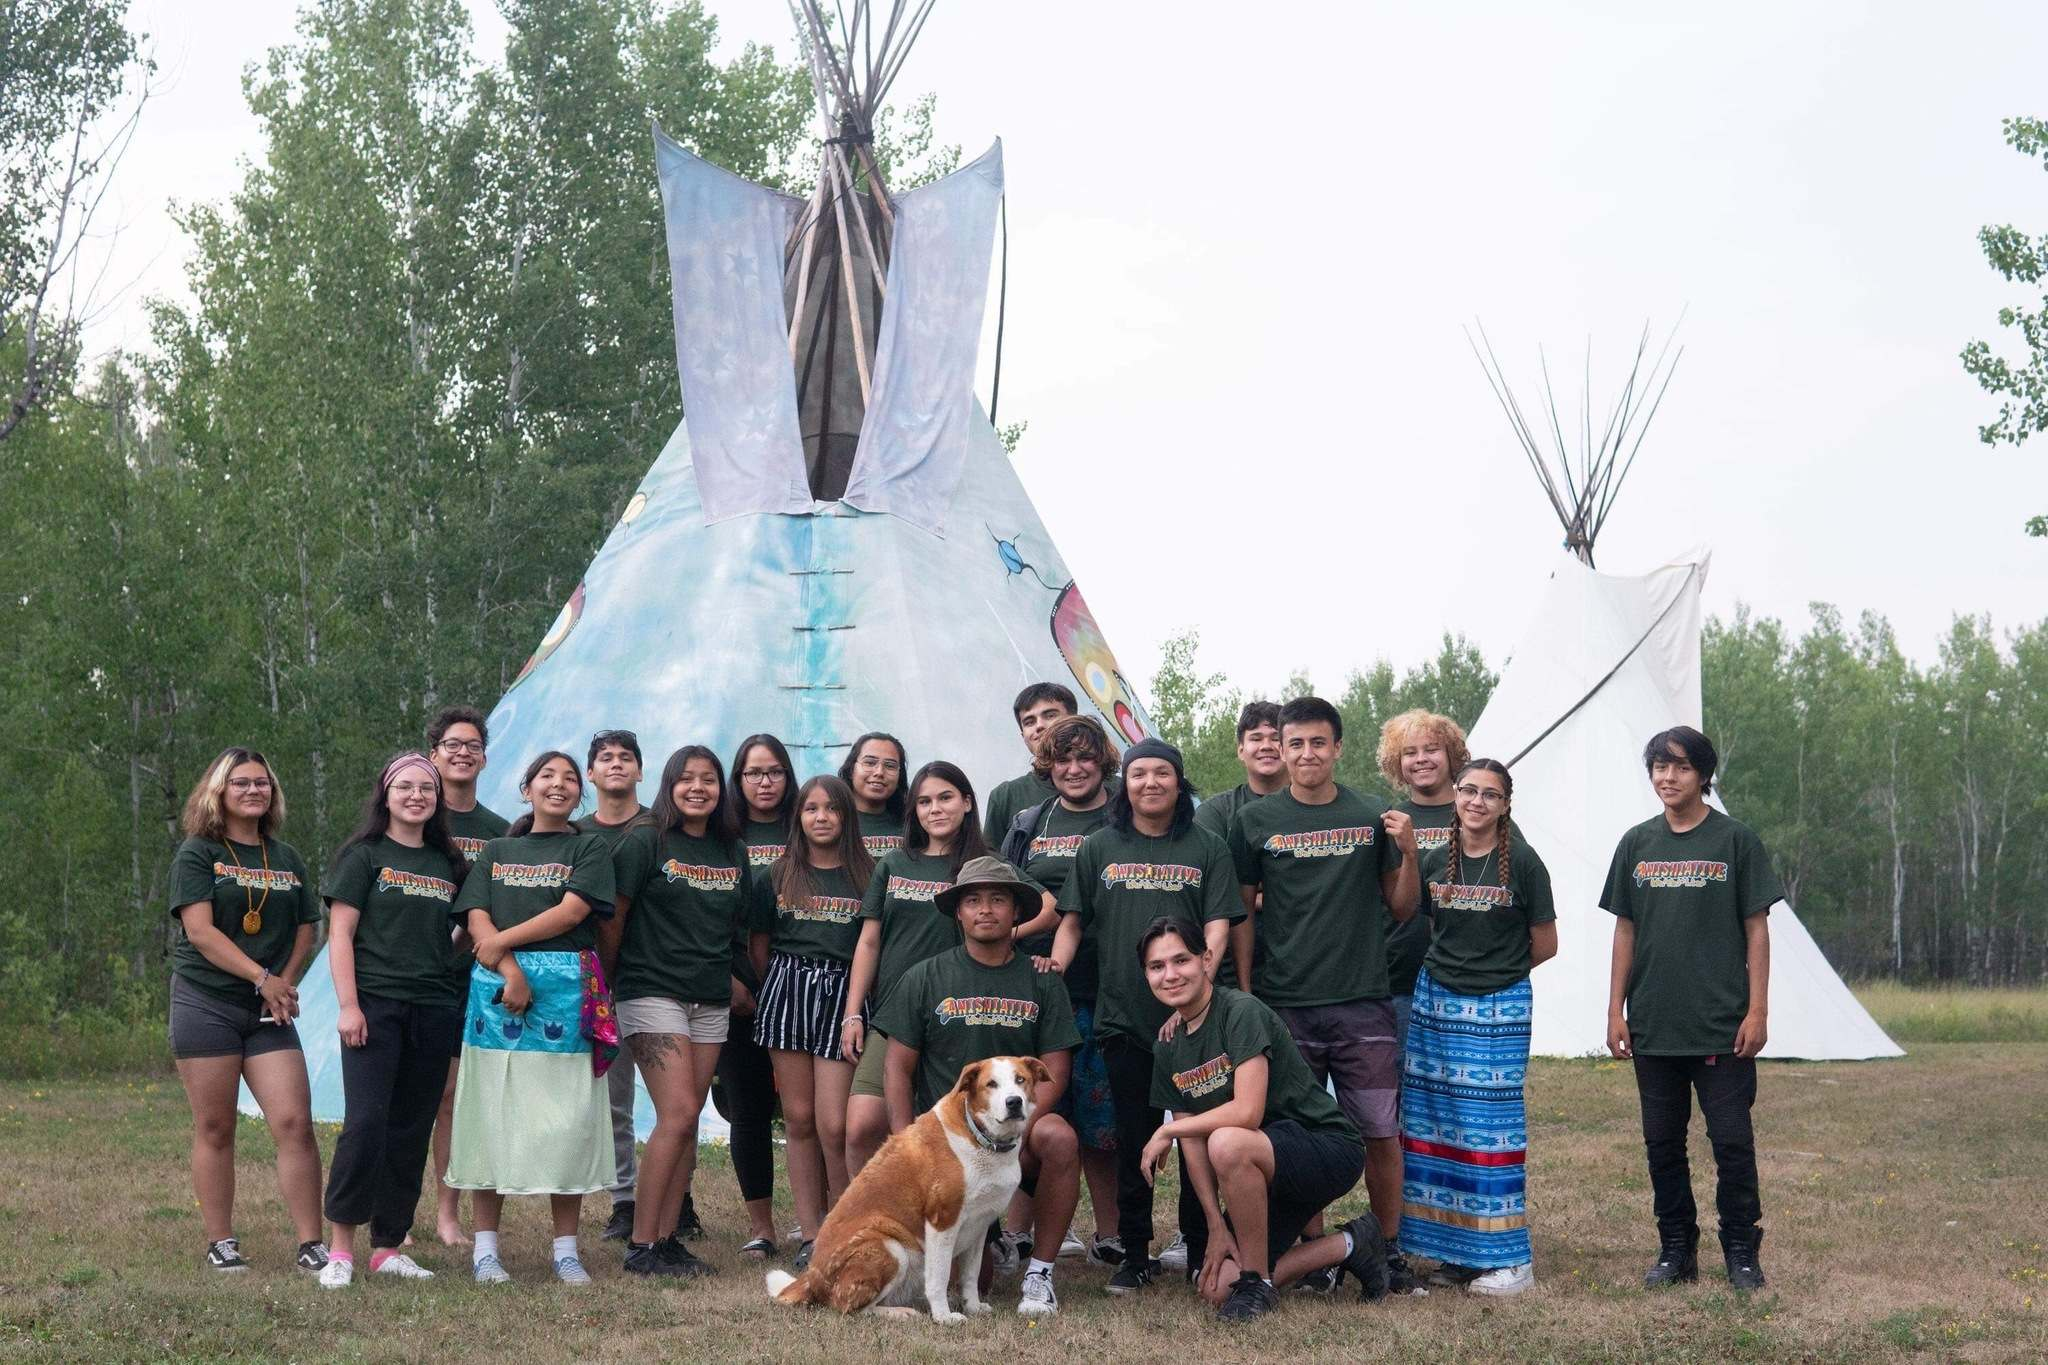 Rylee Nepinak and his brother River led Anishiative's first land-based leadership camp for youth over three days at Cedar Lake. (Supplied)</p></p>